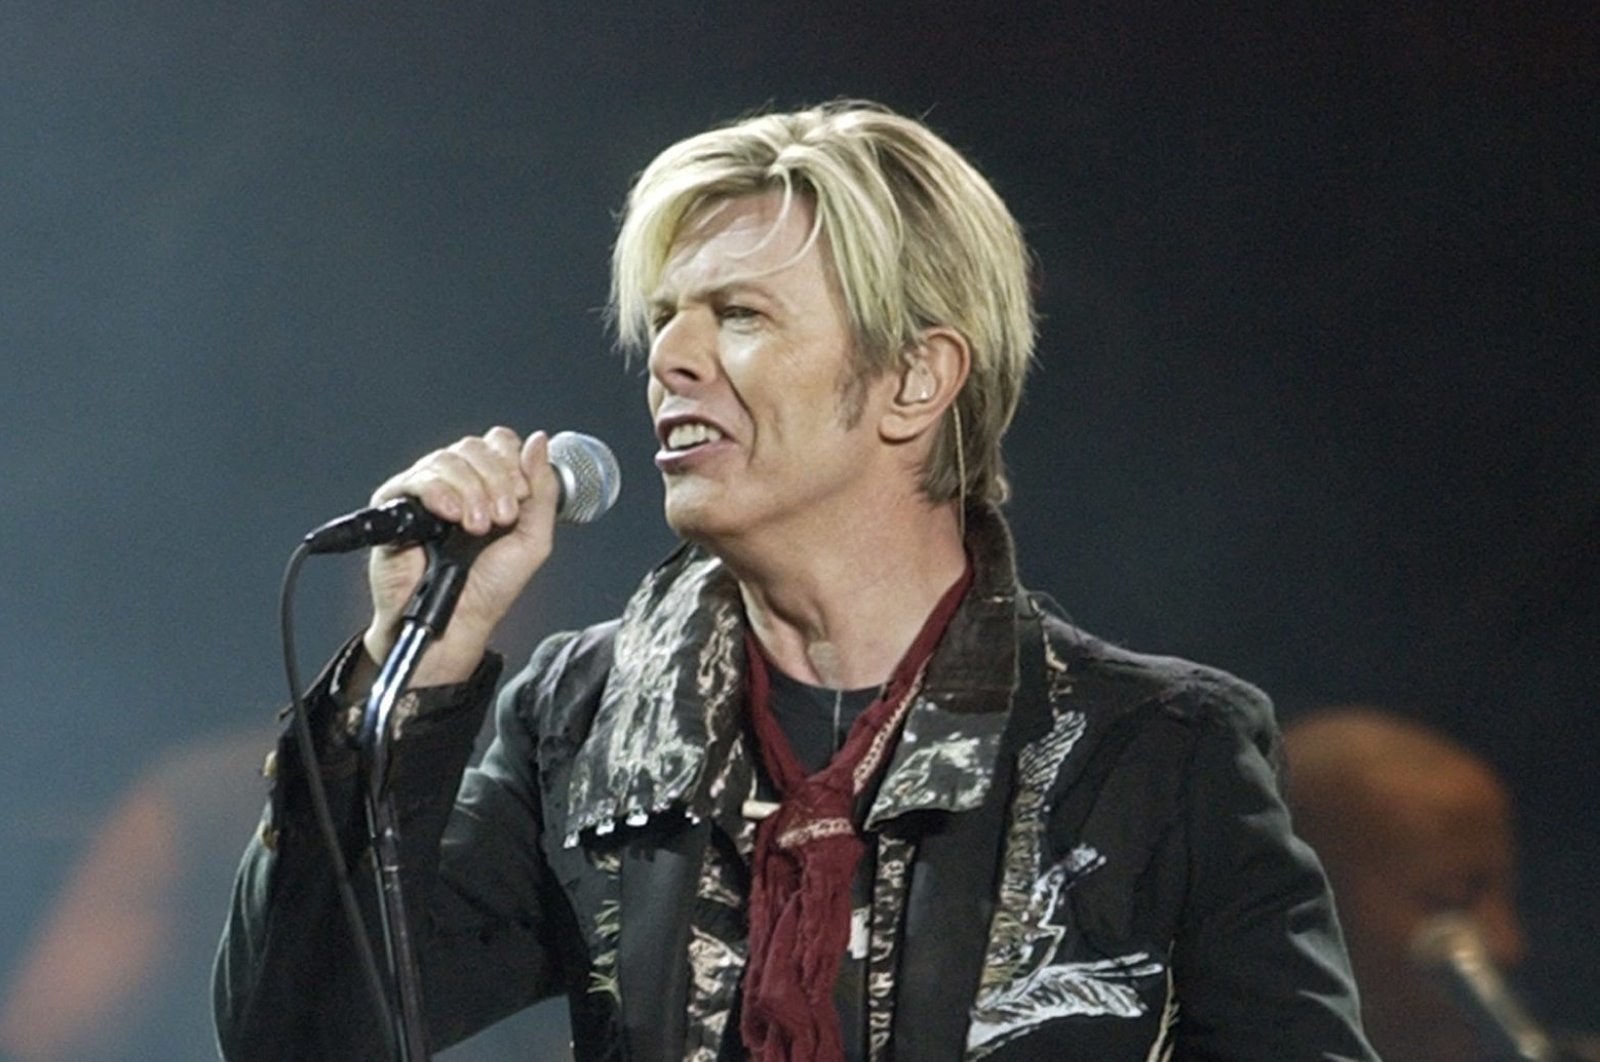 """David Bowie launches the U.S. leg of his worldwide tour called """"A Reality Tour,"""" at Madison Square Garden in New York City, New York, U.S., Dec. 15, 2003. (AP Photo)"""